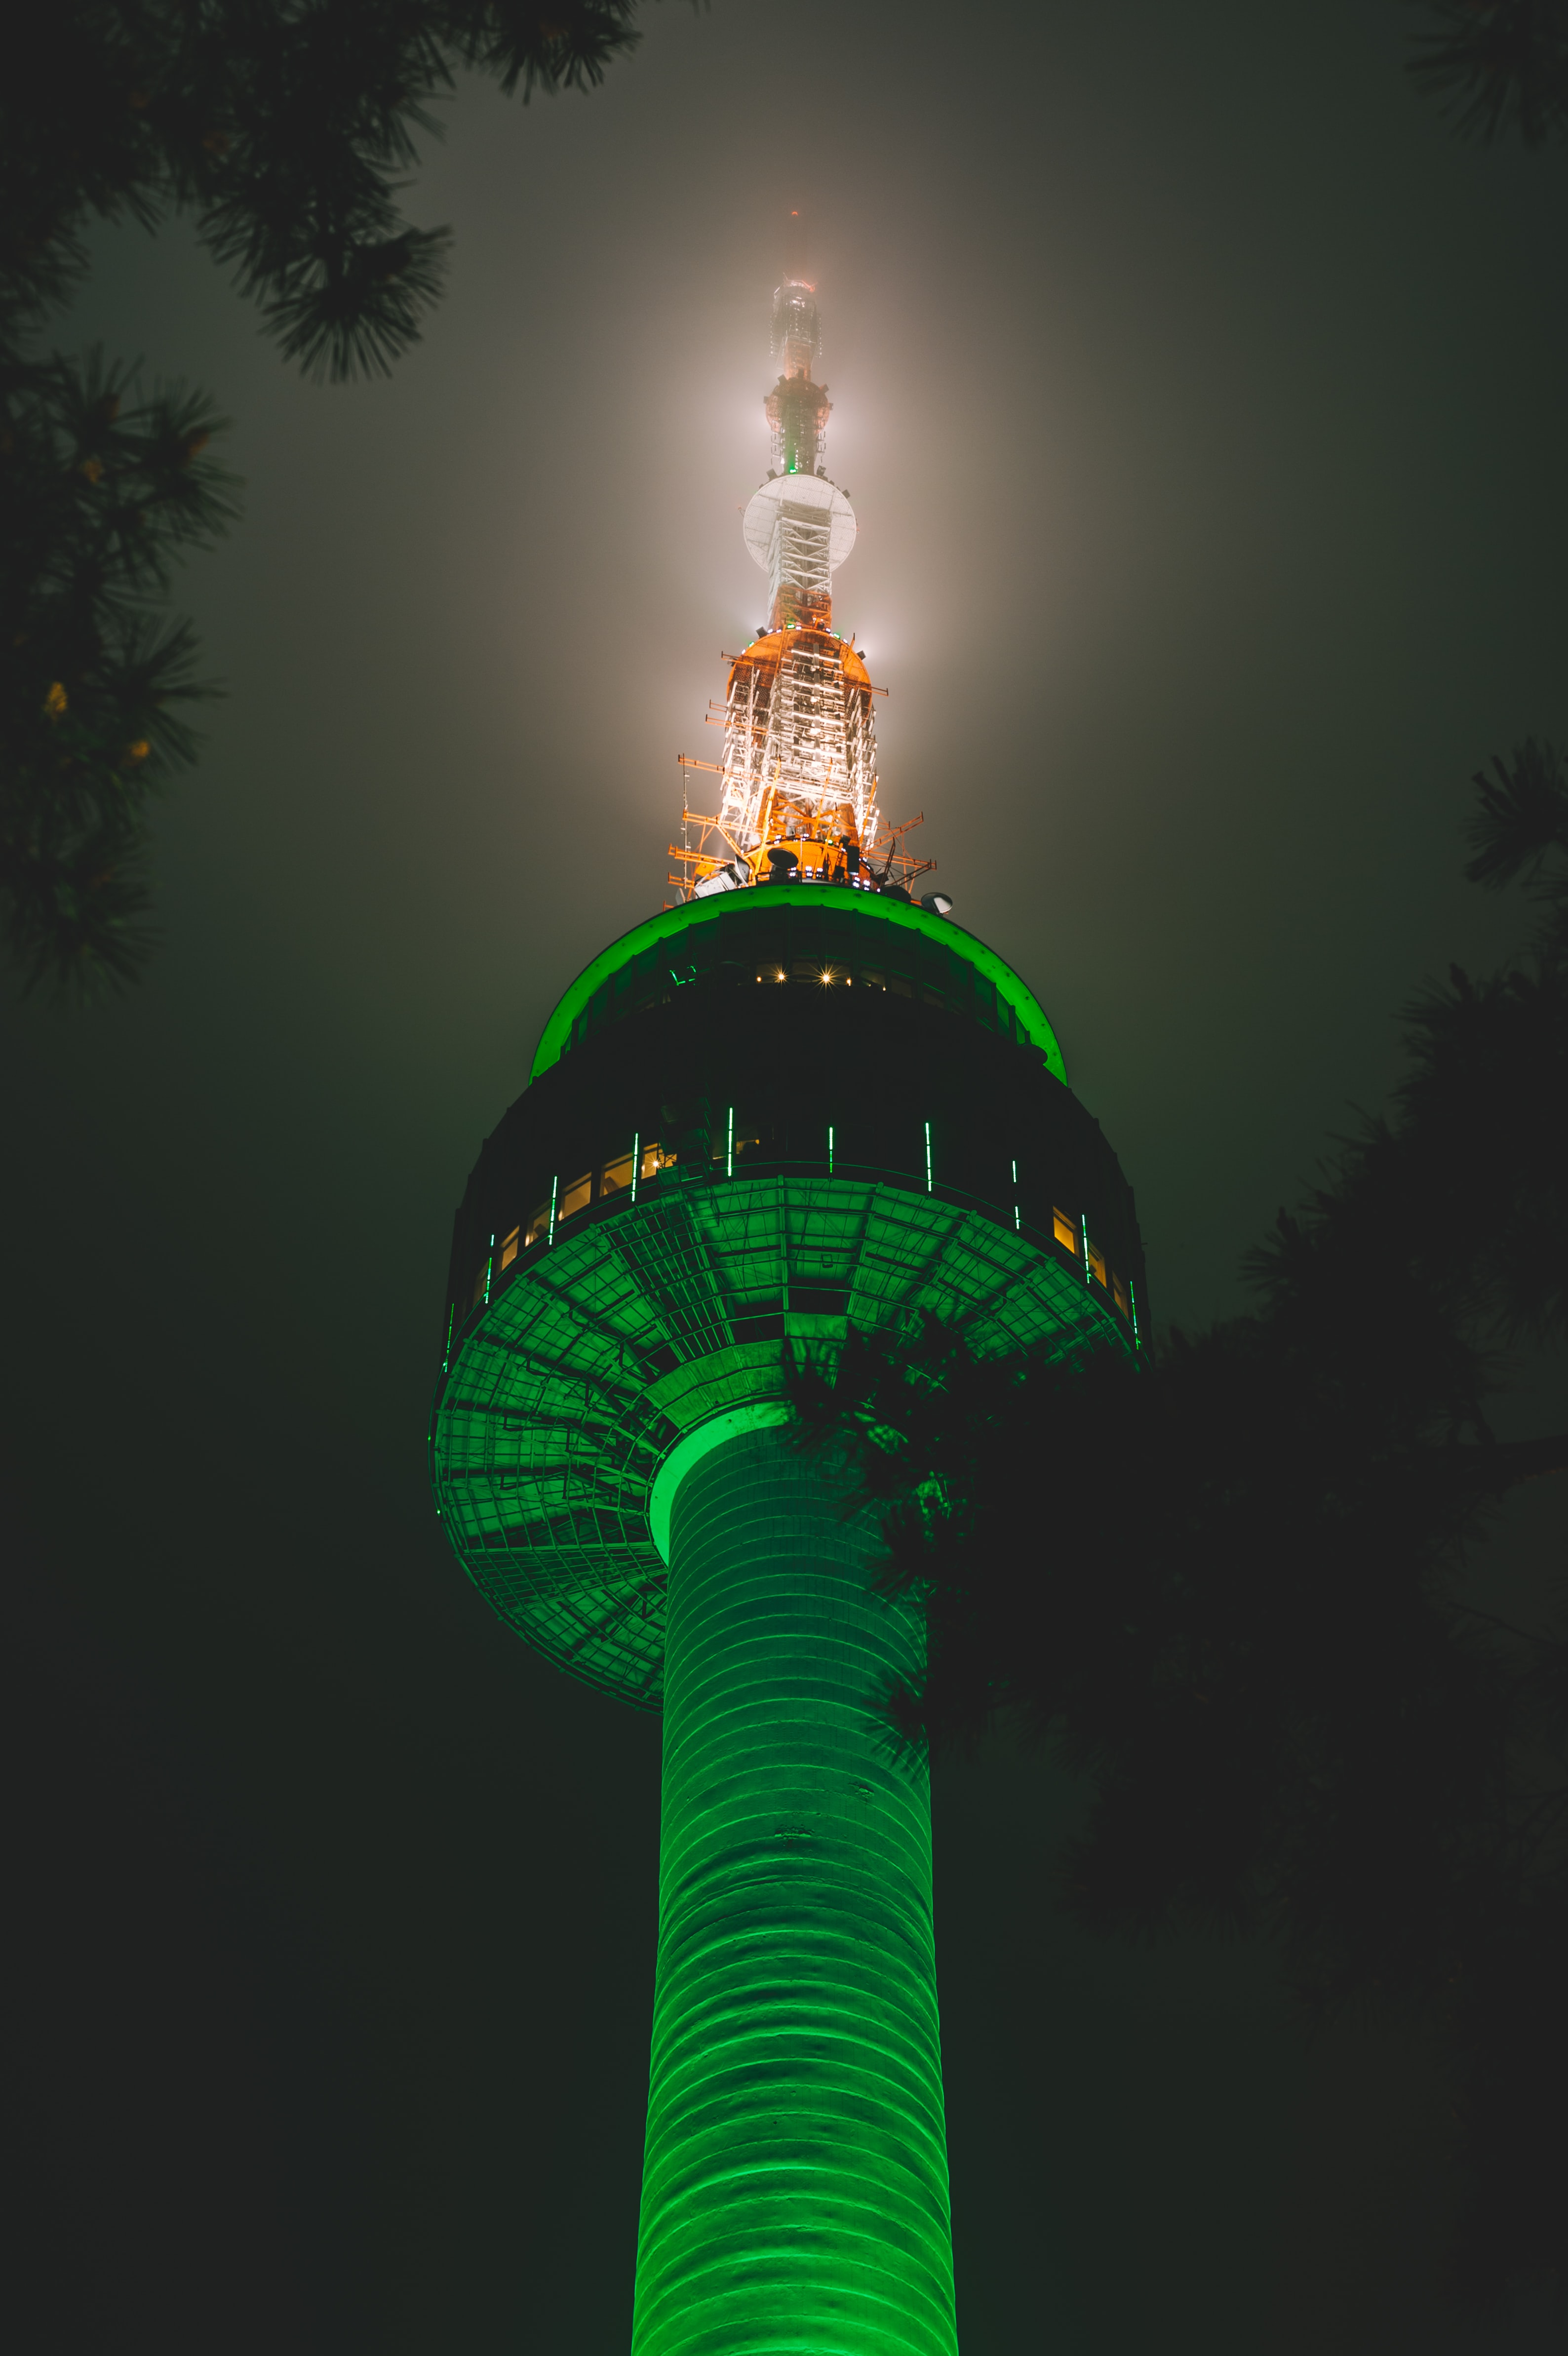 turned on green and white lighted tower during nighttime